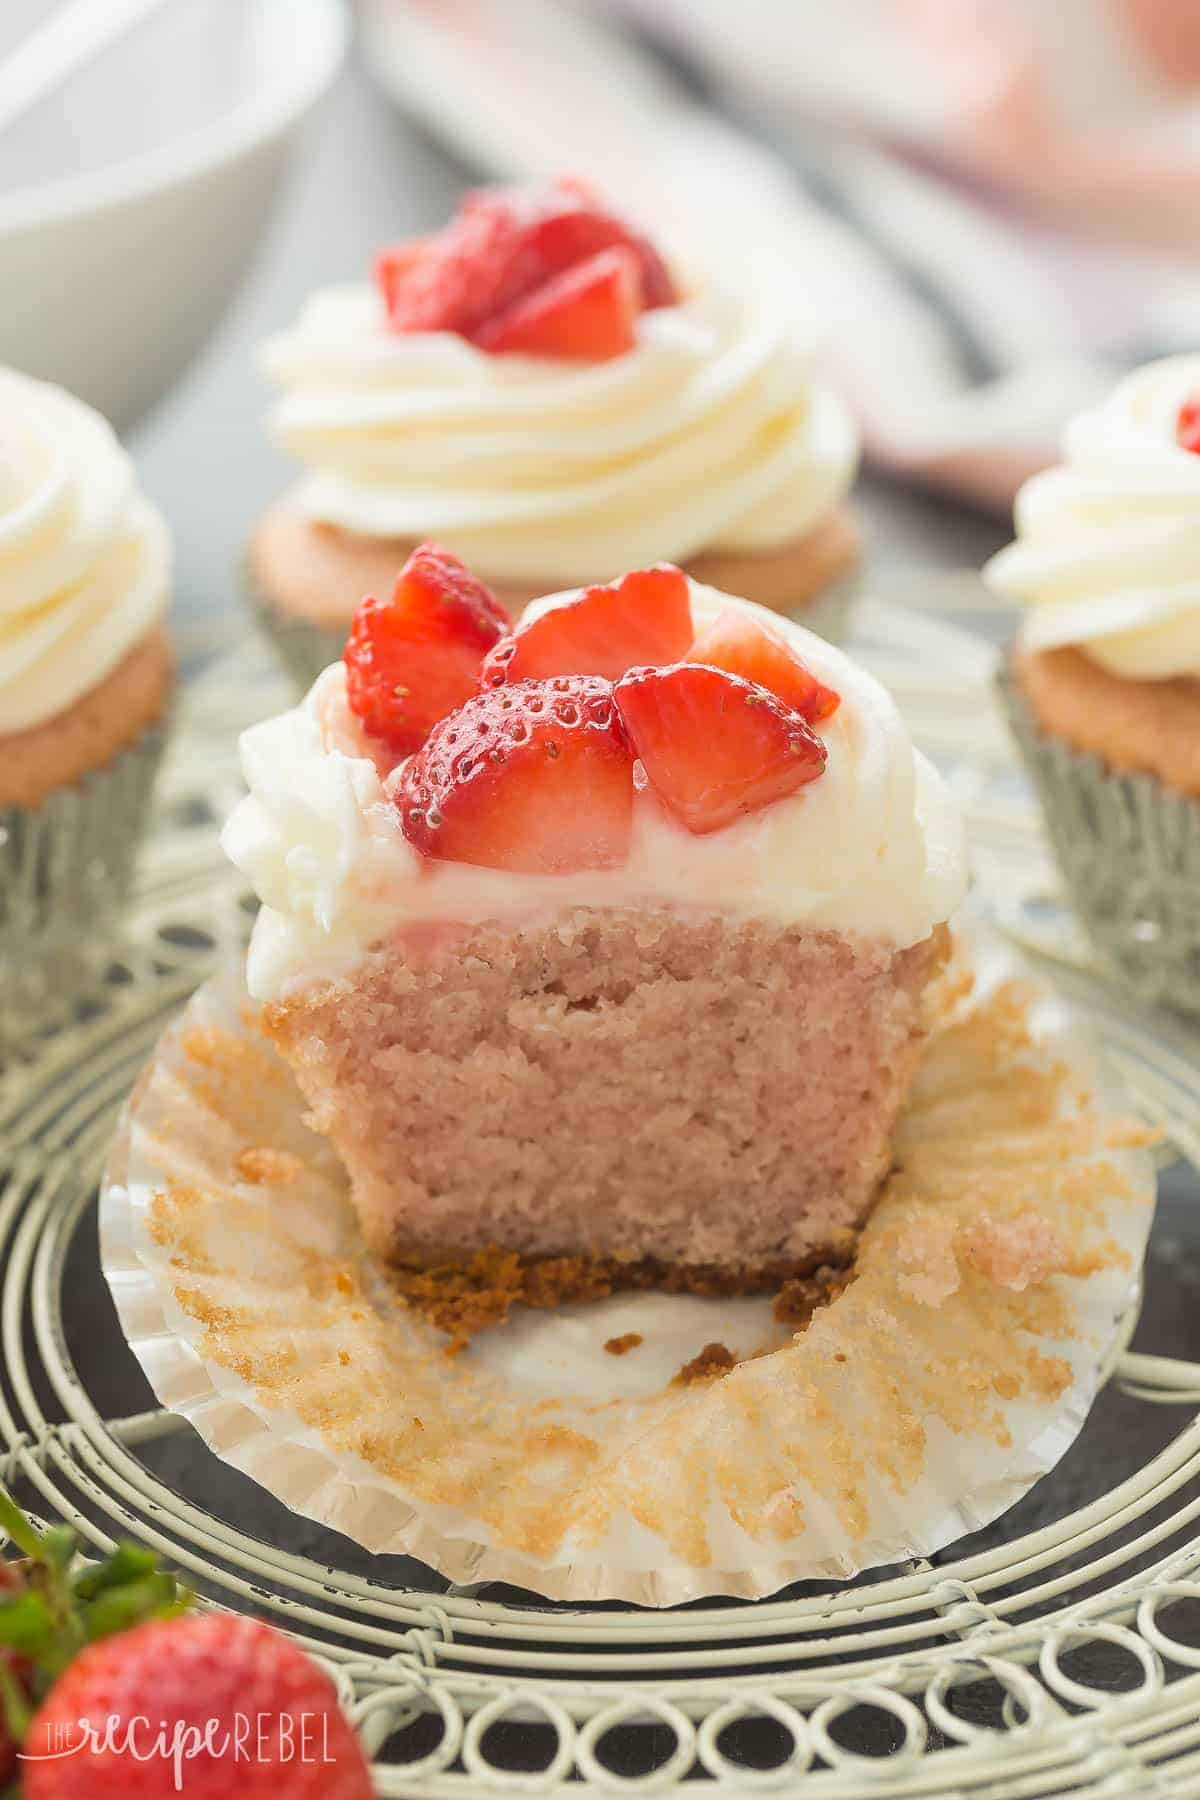 strawberry cheesecake cupcake cut in half to reveal pink cupcake and graham cracker crust on bottom